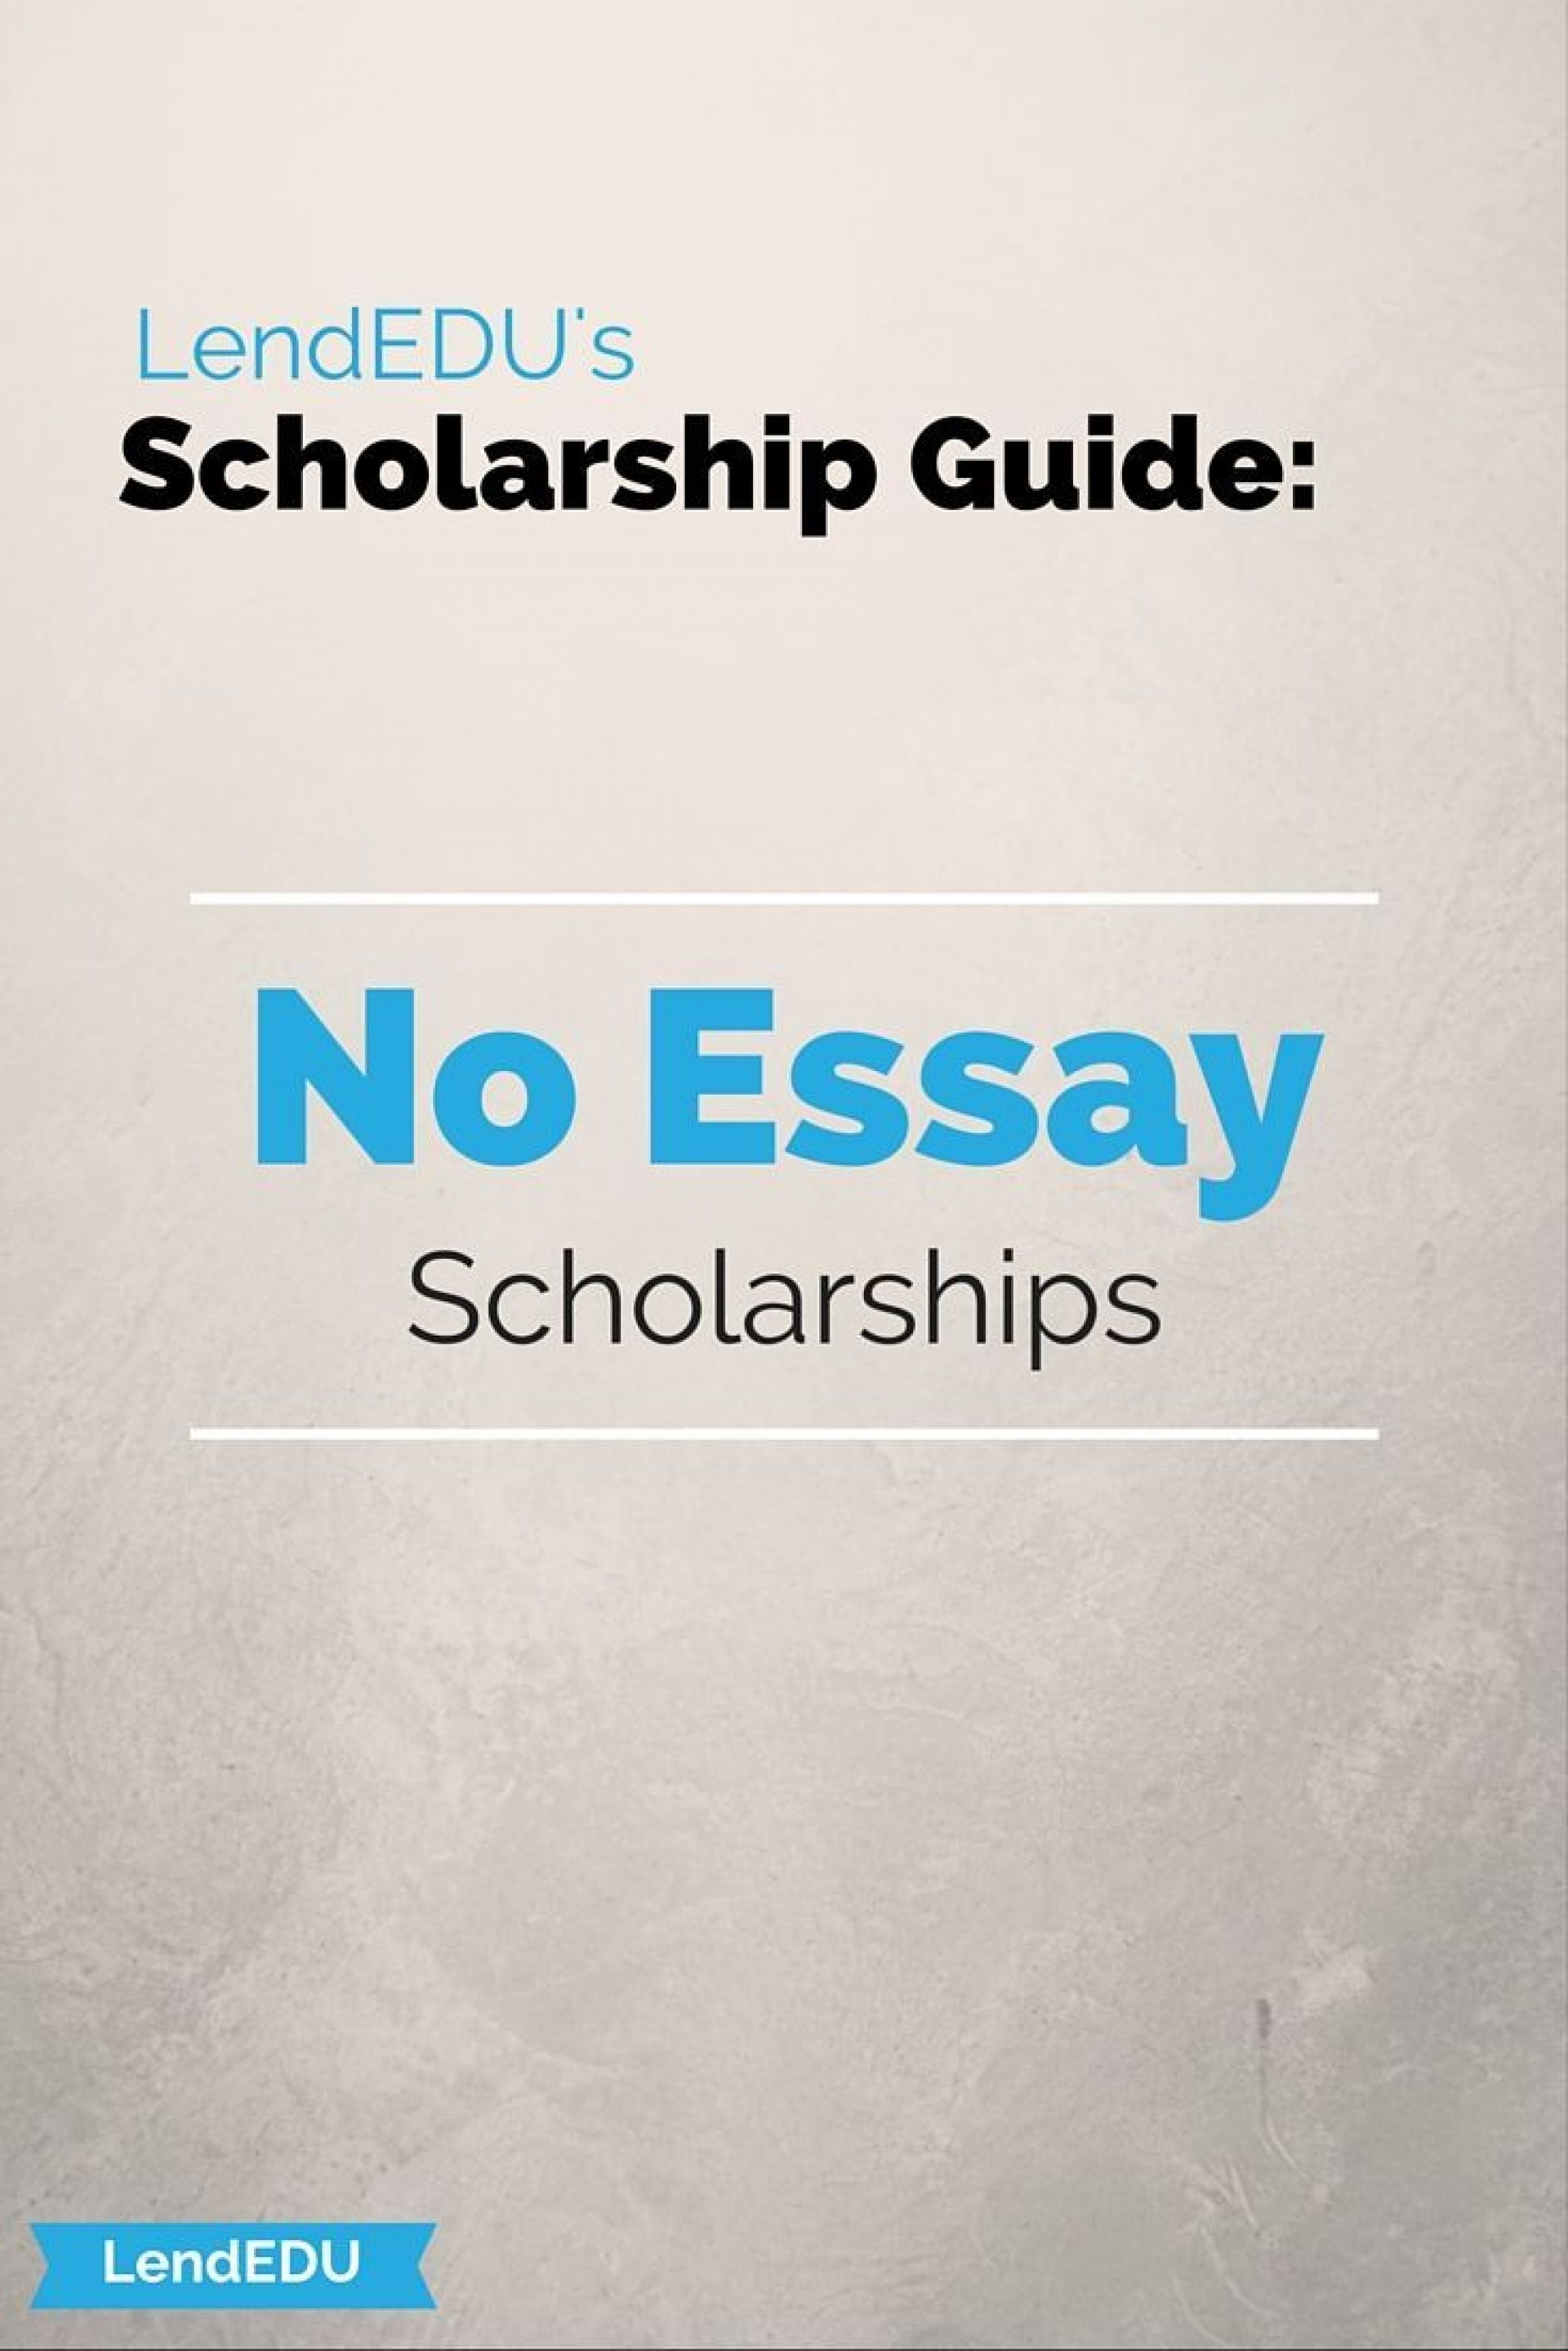 016 Essay Example No Scholarship Wondrous College Scholarships 2018 2019 Free 1920